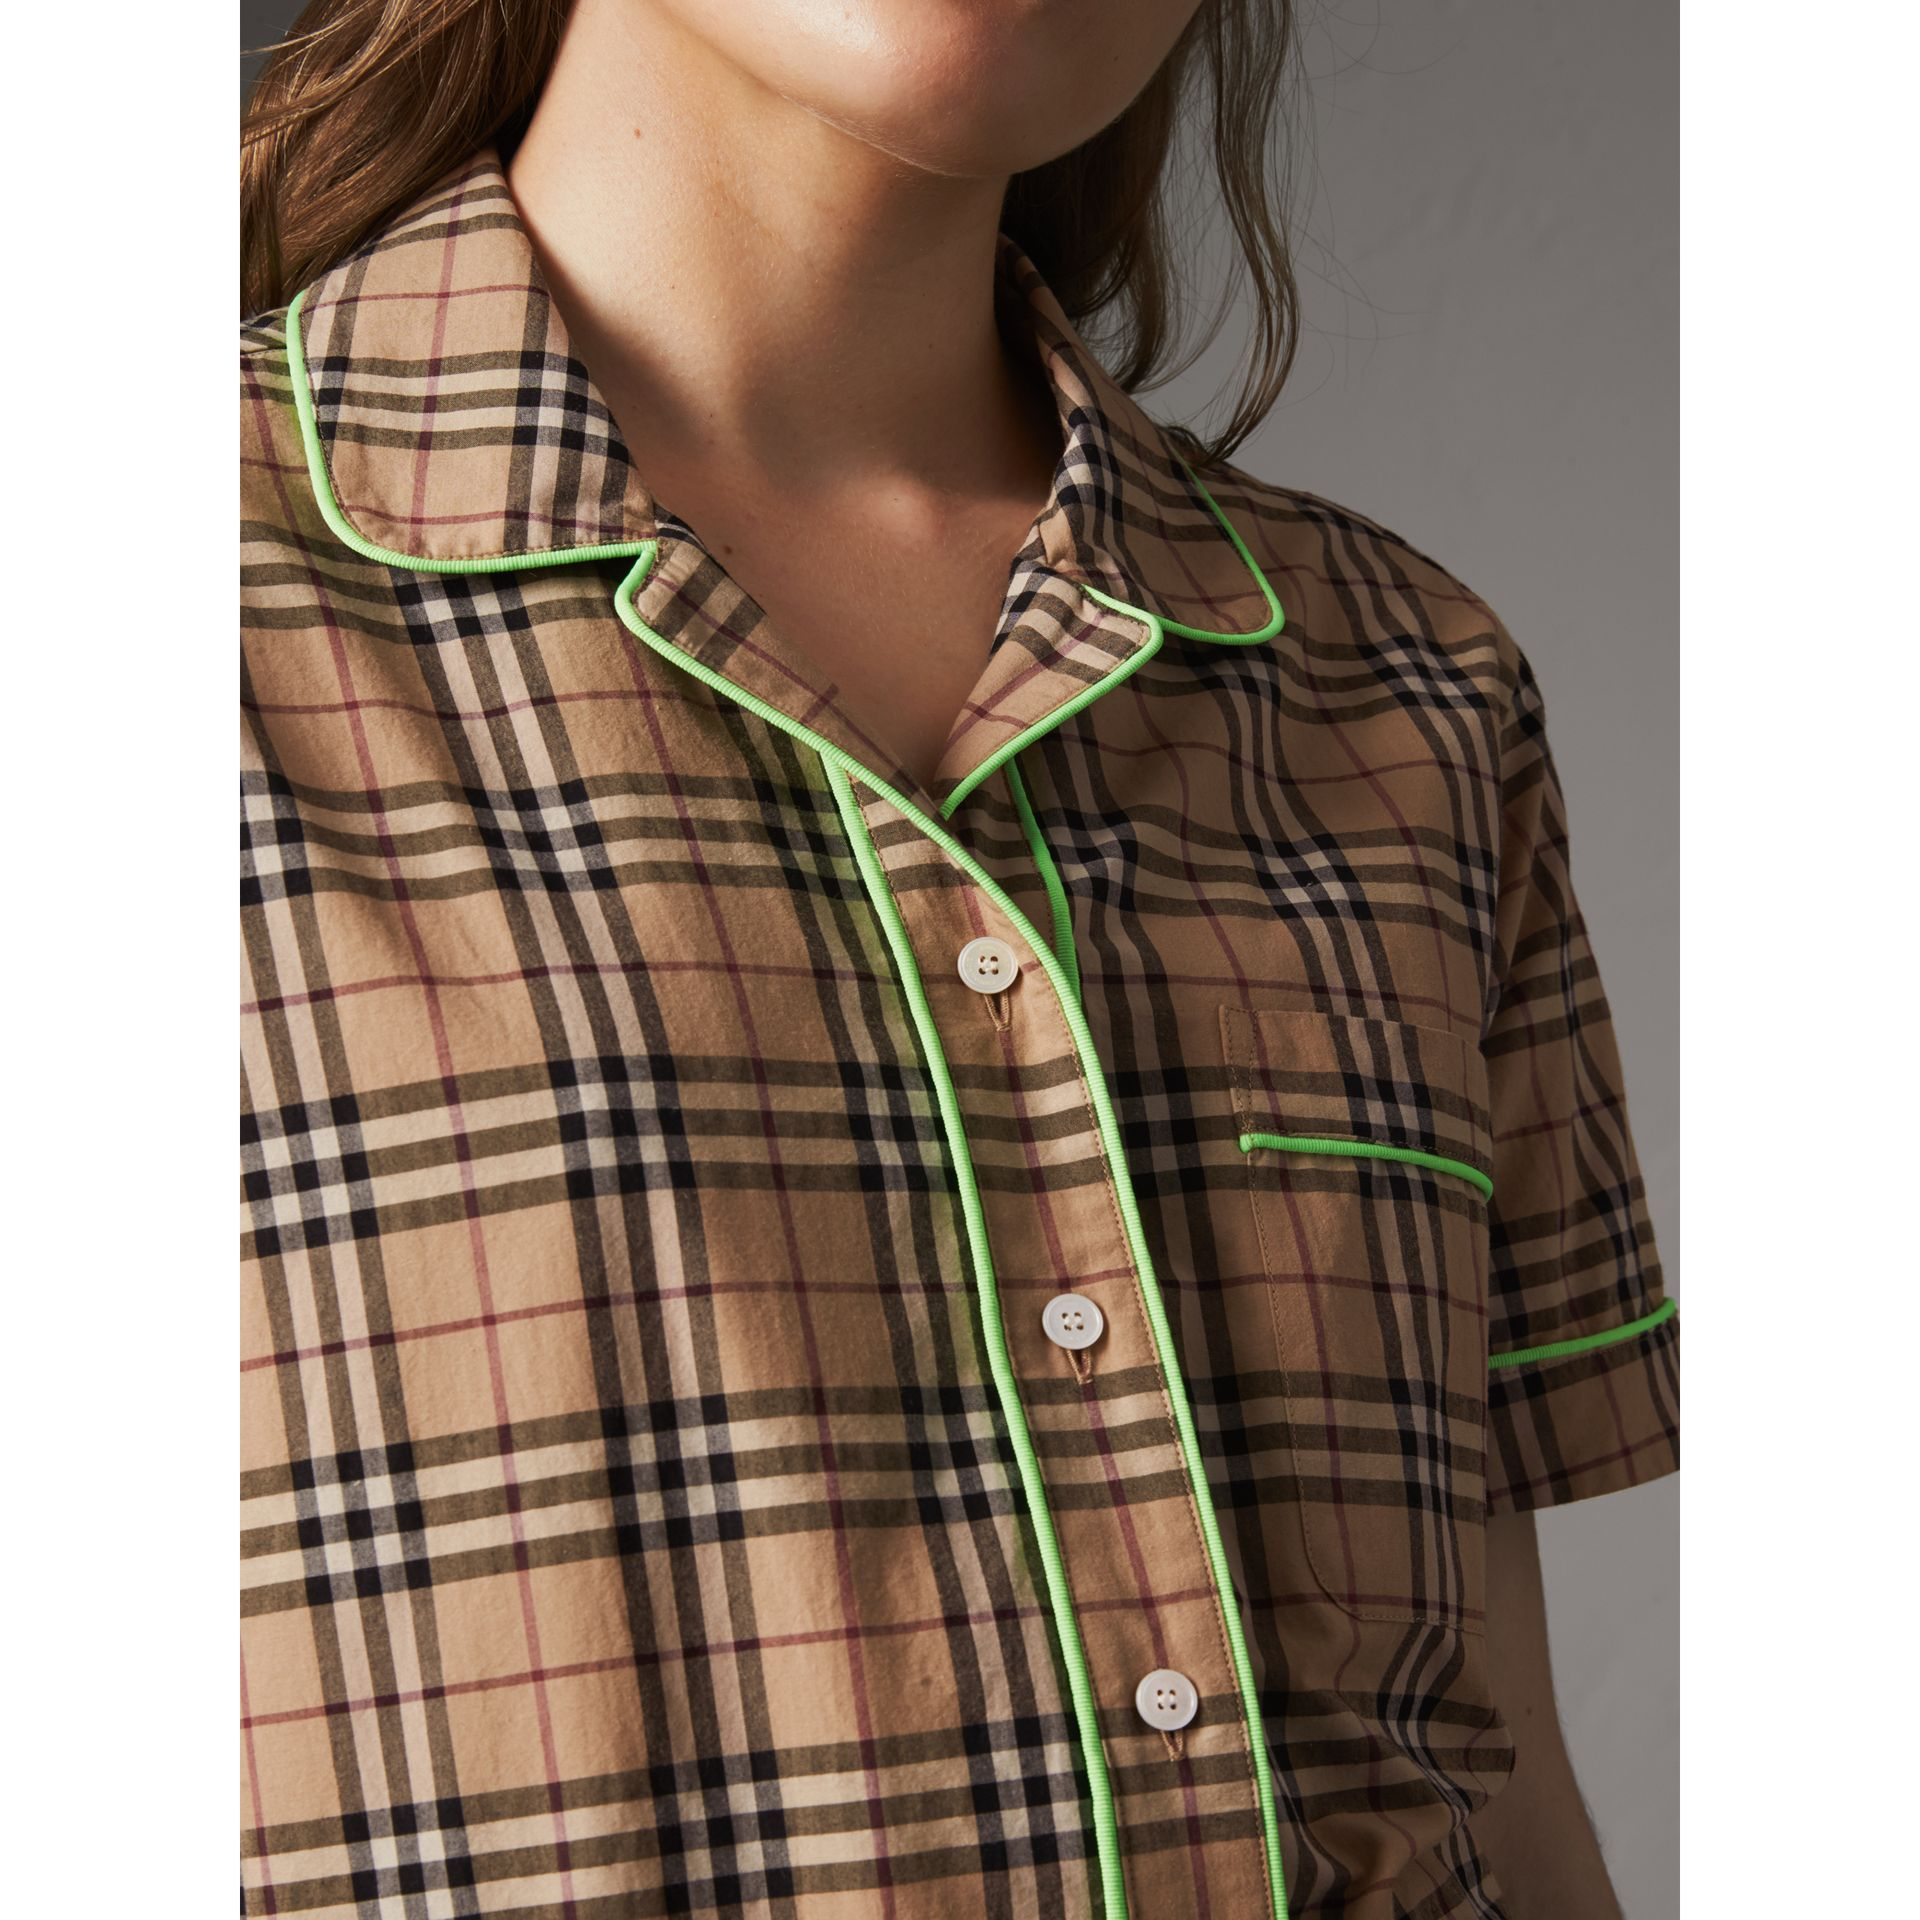 Contrast Piping Check Cotton Pyjama-style Shirt in Camel - Women | Burberry - gallery image 1